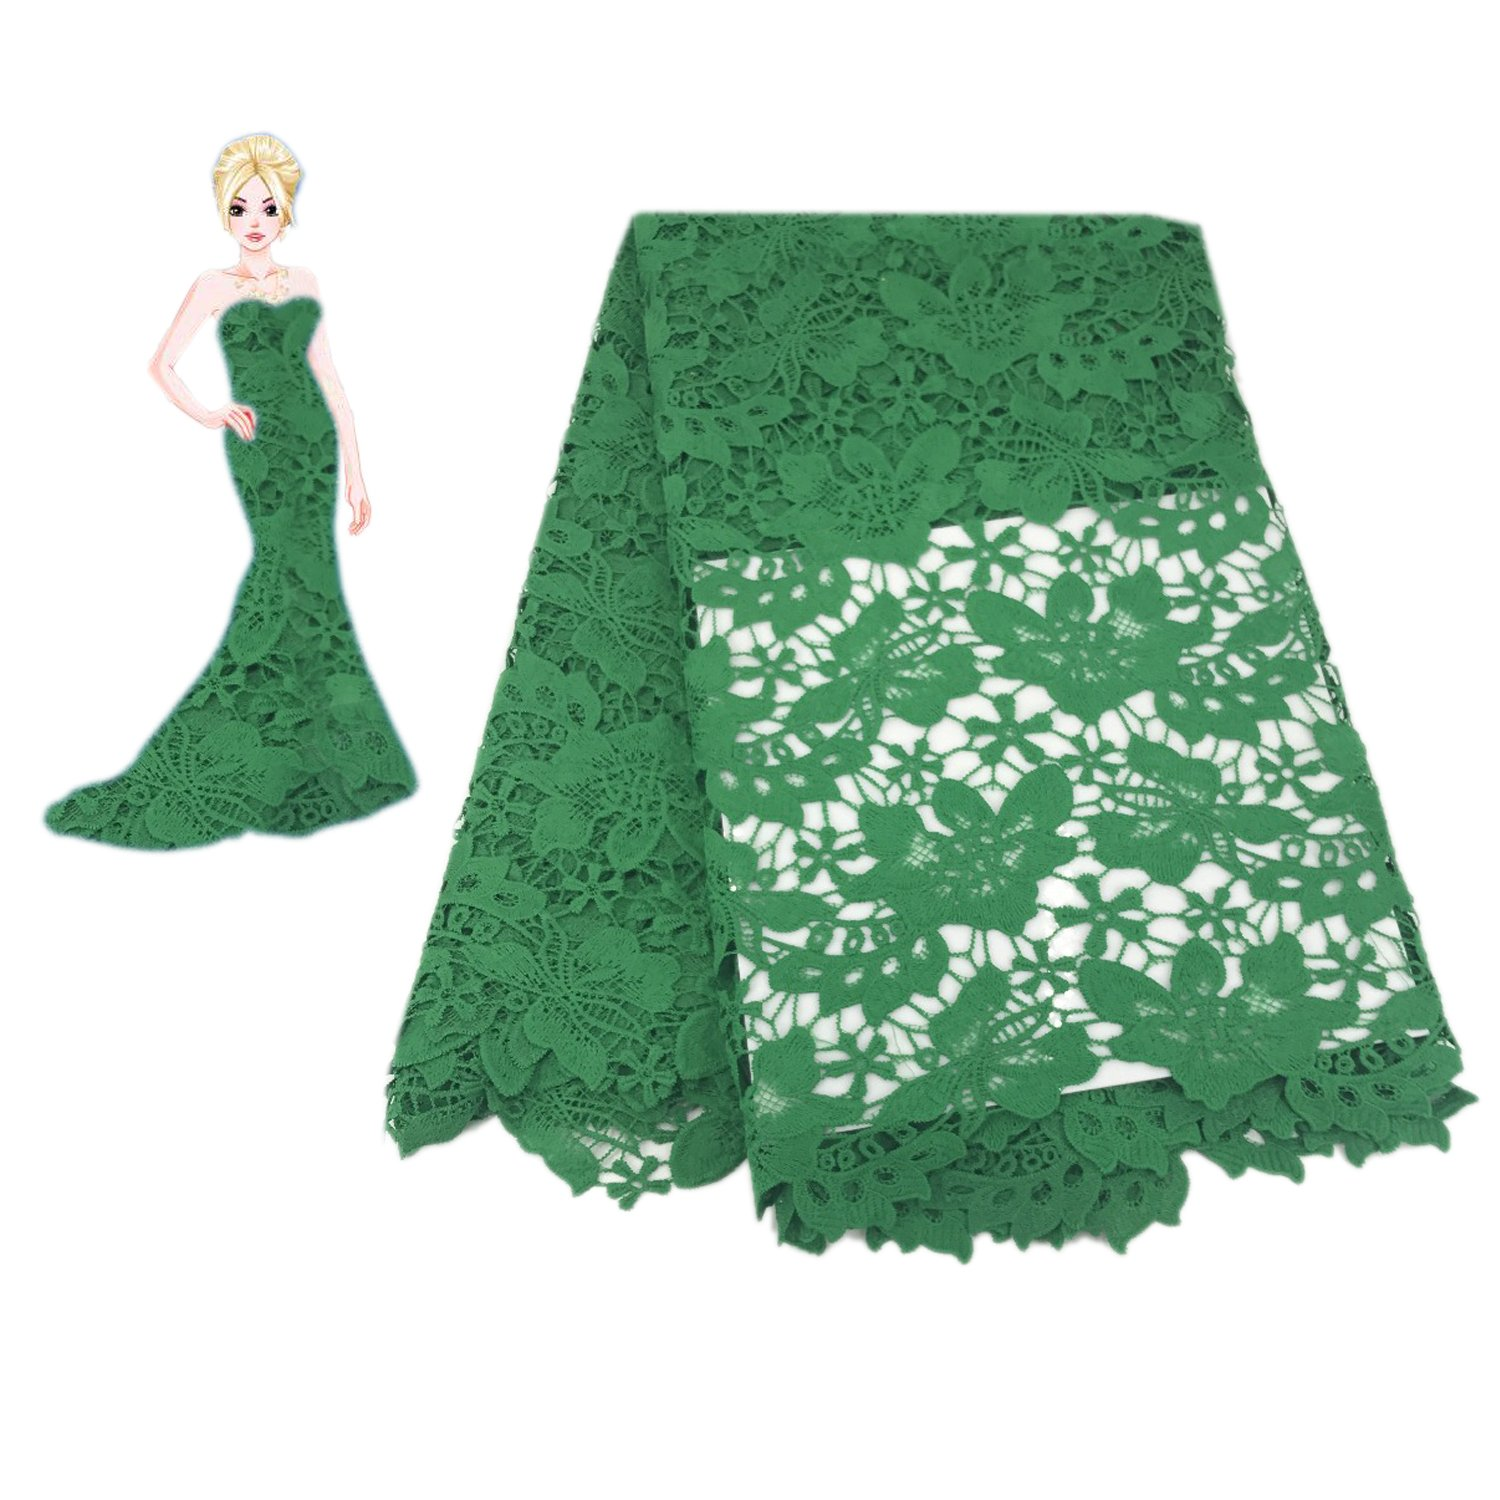 KENLACE 5Yards African Guipure Lace Fabric for Sewing Best Selling African Cord Lace Fabric to Make Dresses Skirts for Wedding Party (Green) by KENLACE